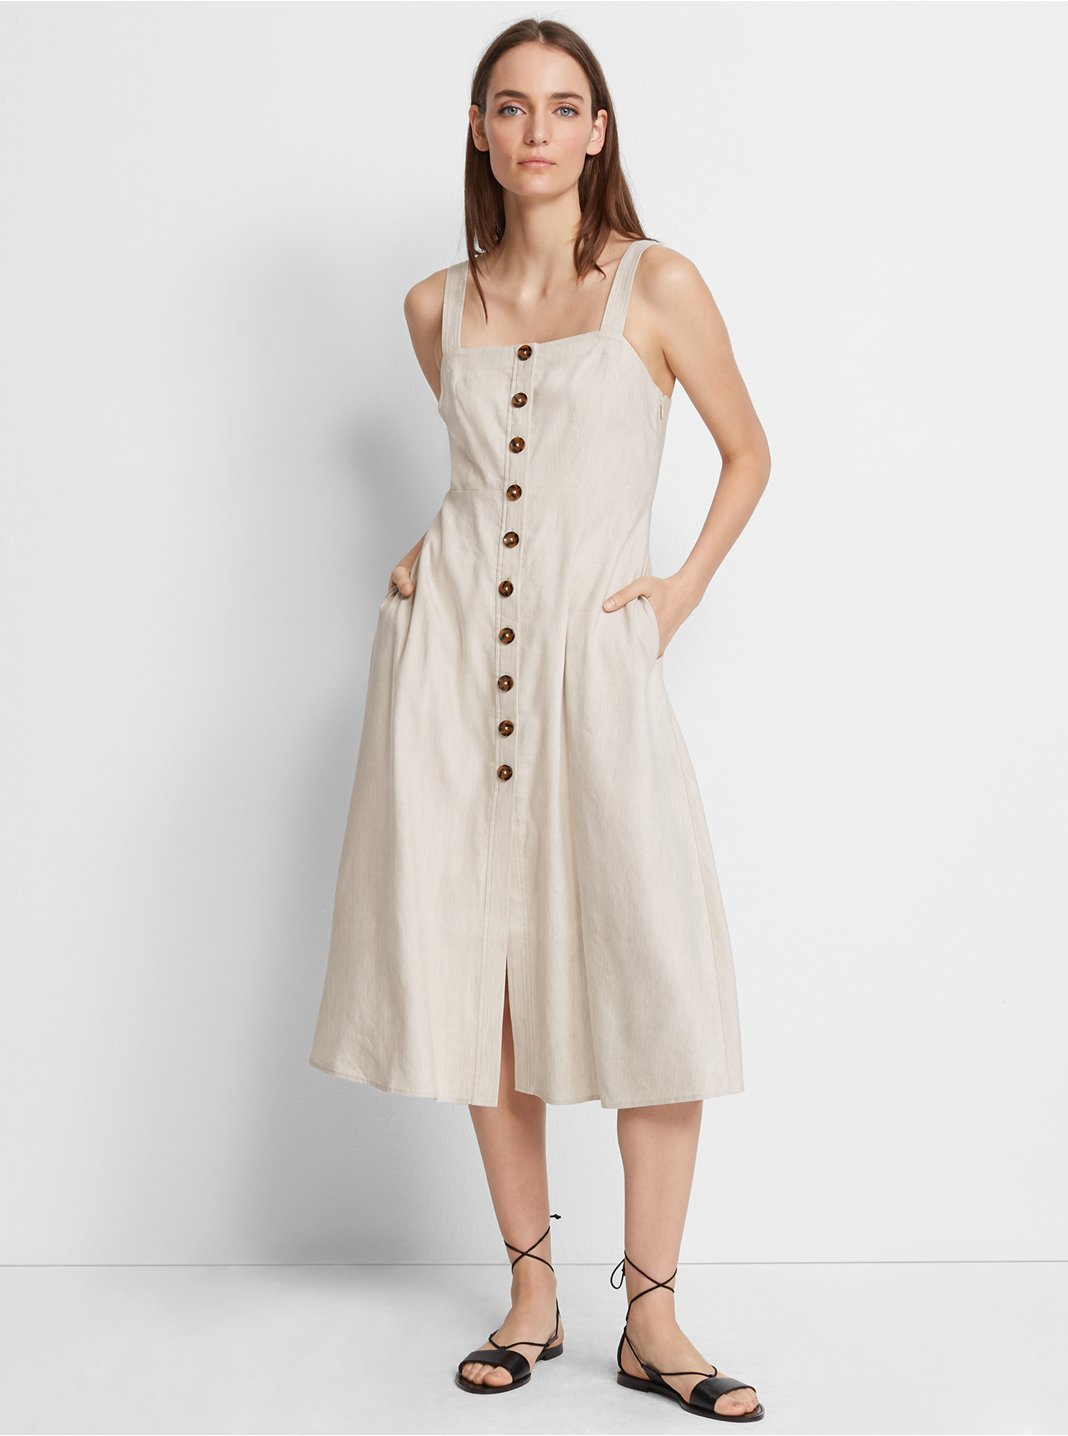 Piqua Linen Dress